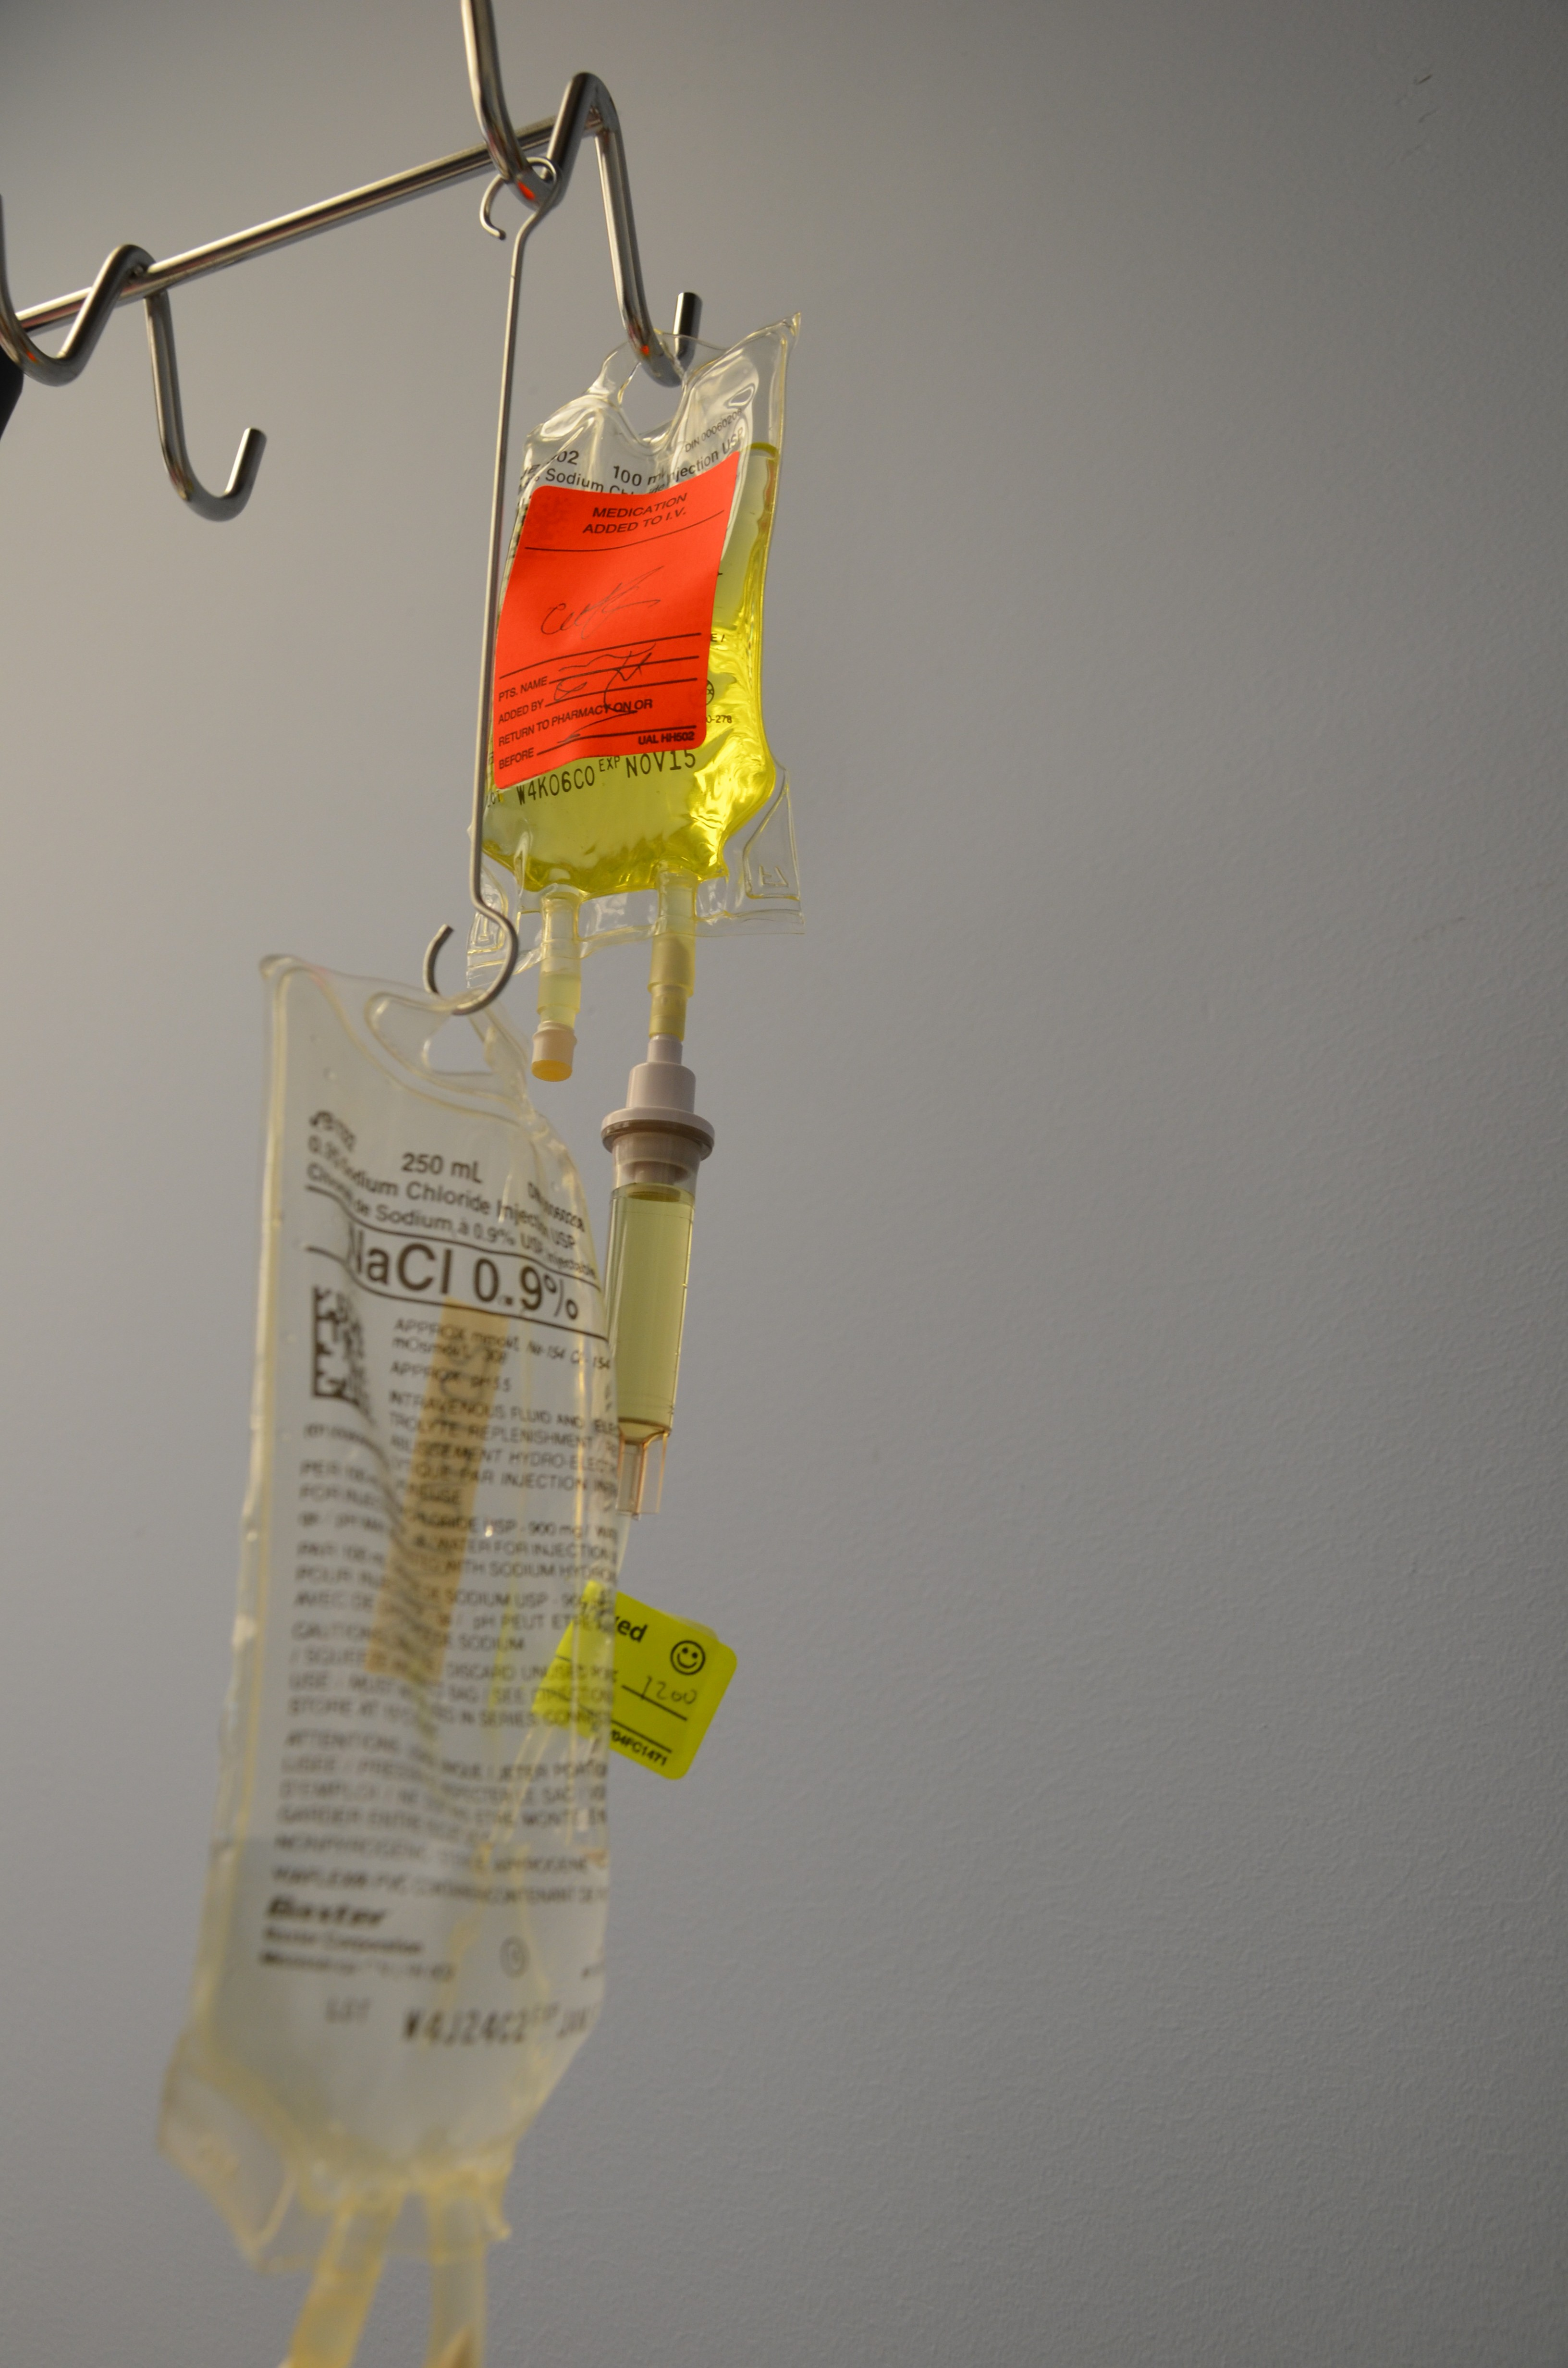 7 6 administering intermittent intravenous medication